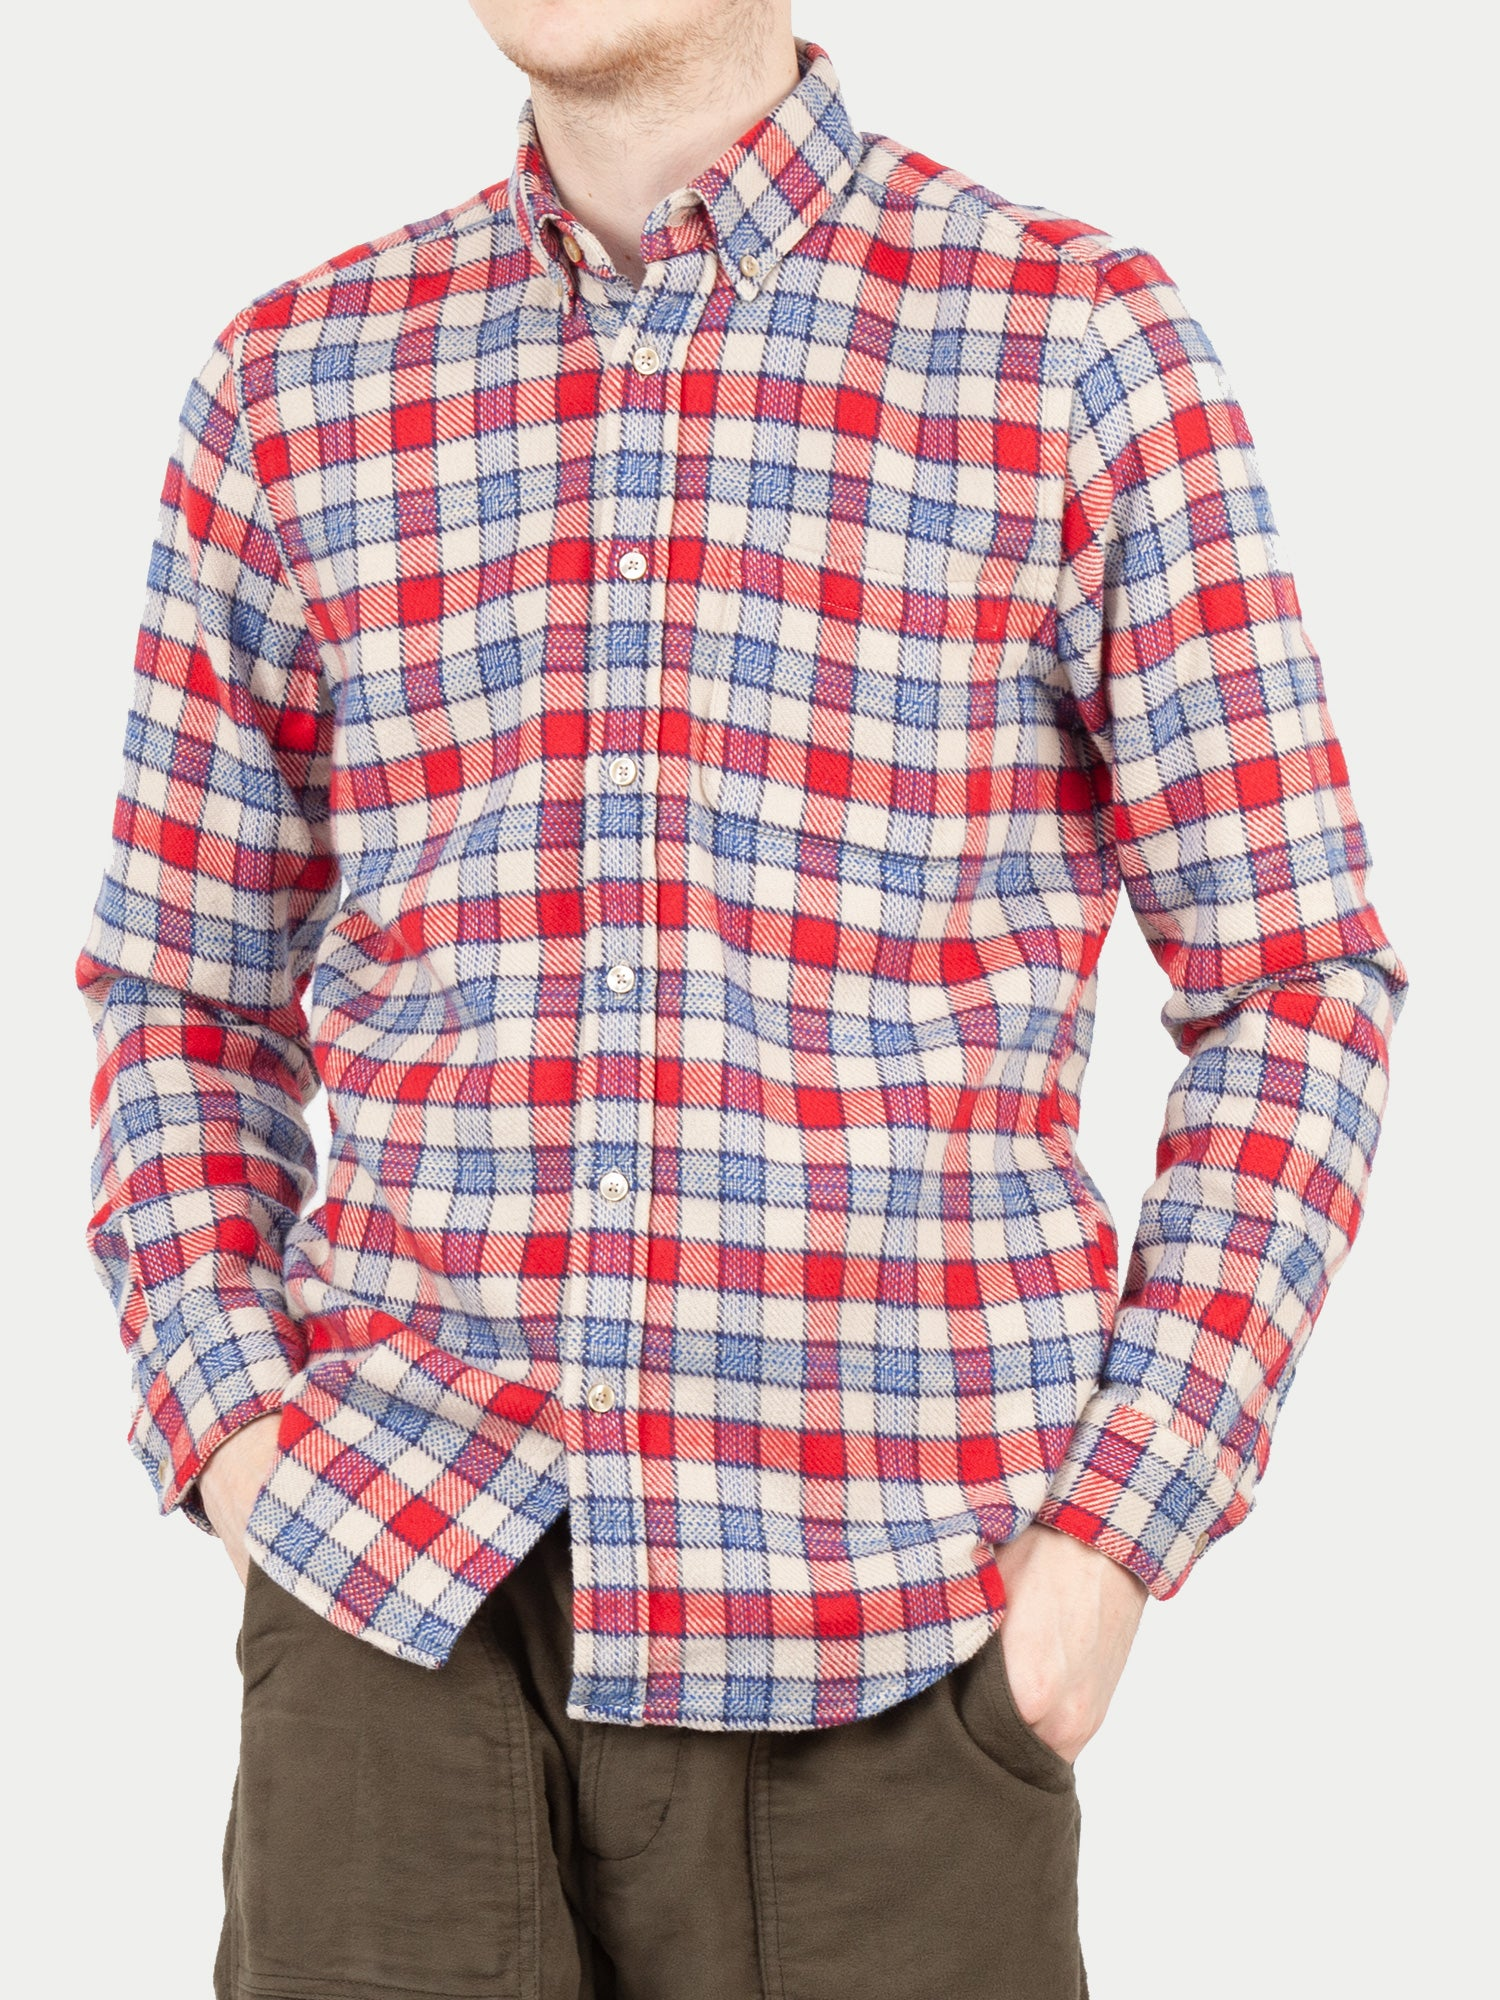 Portuguese Flannel NYC Shirt (Red) m1